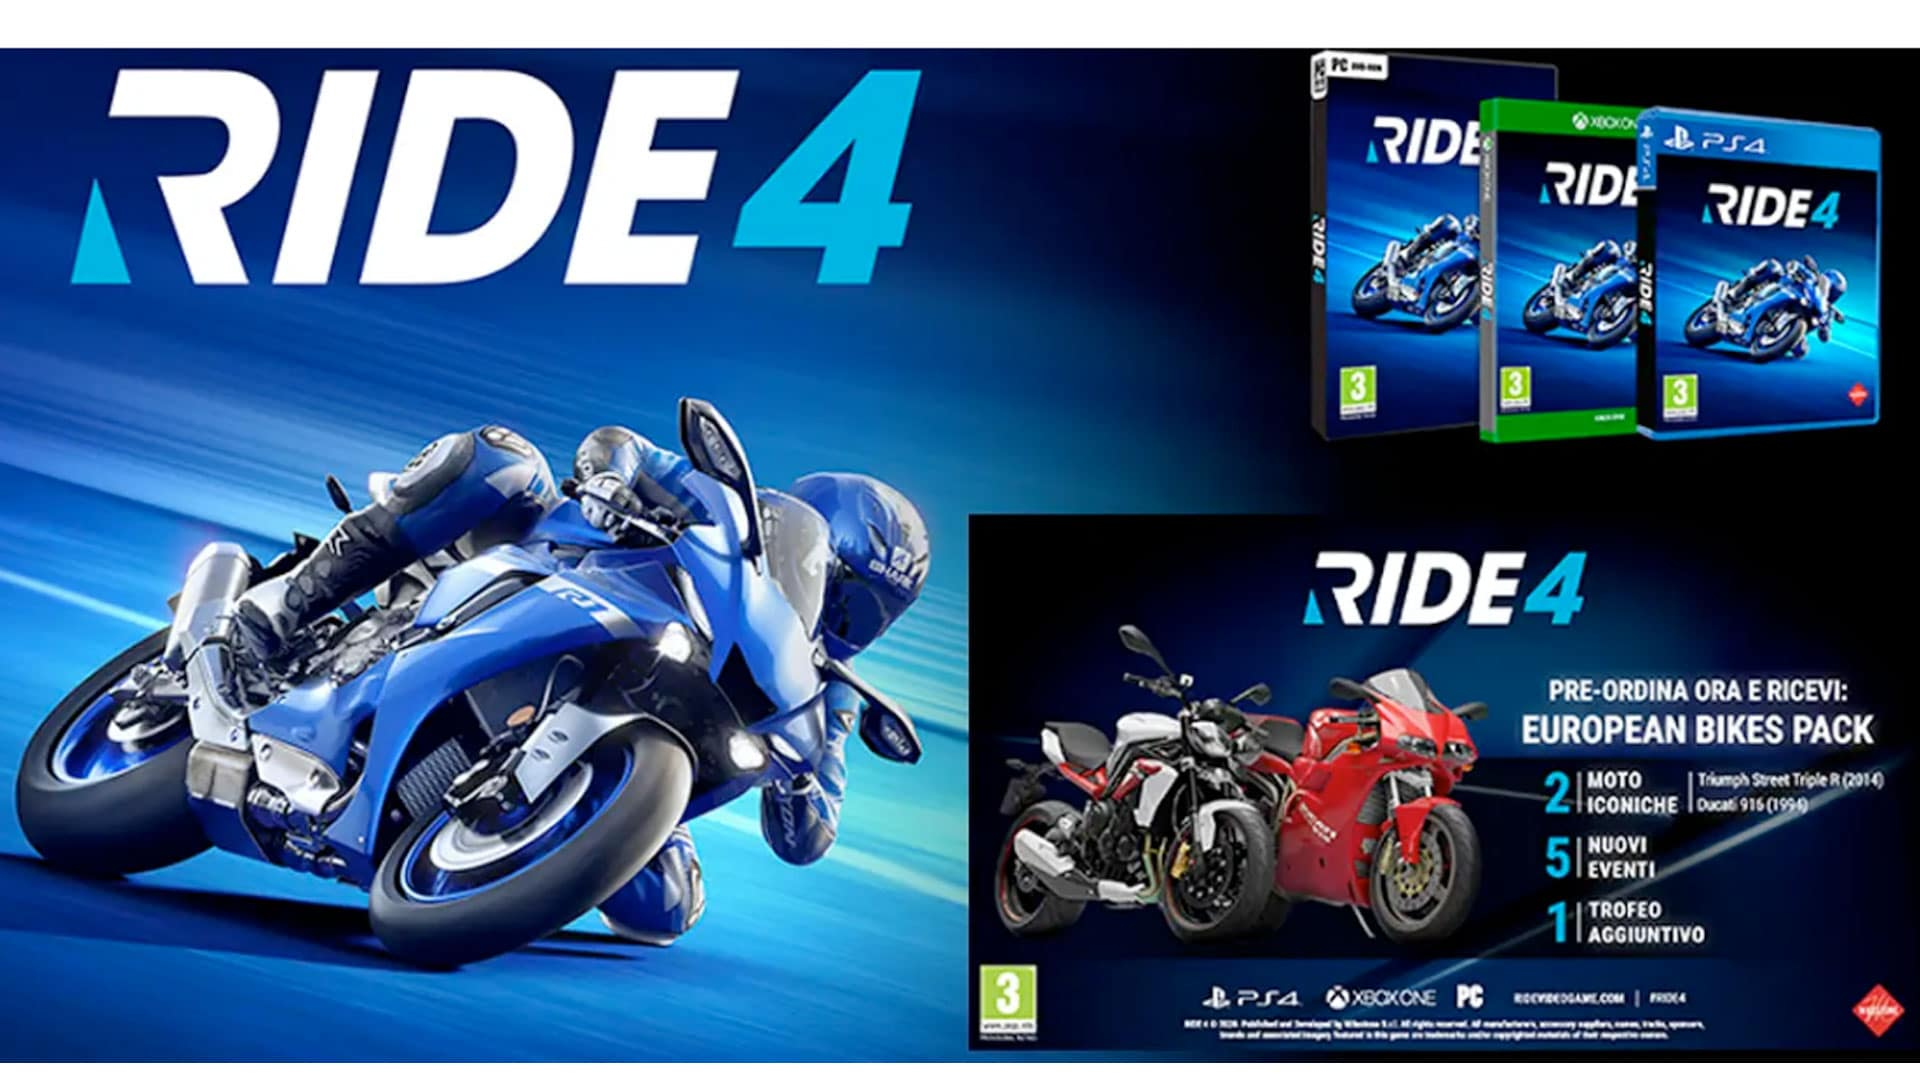 Ride-4 Presell - Ongame Network